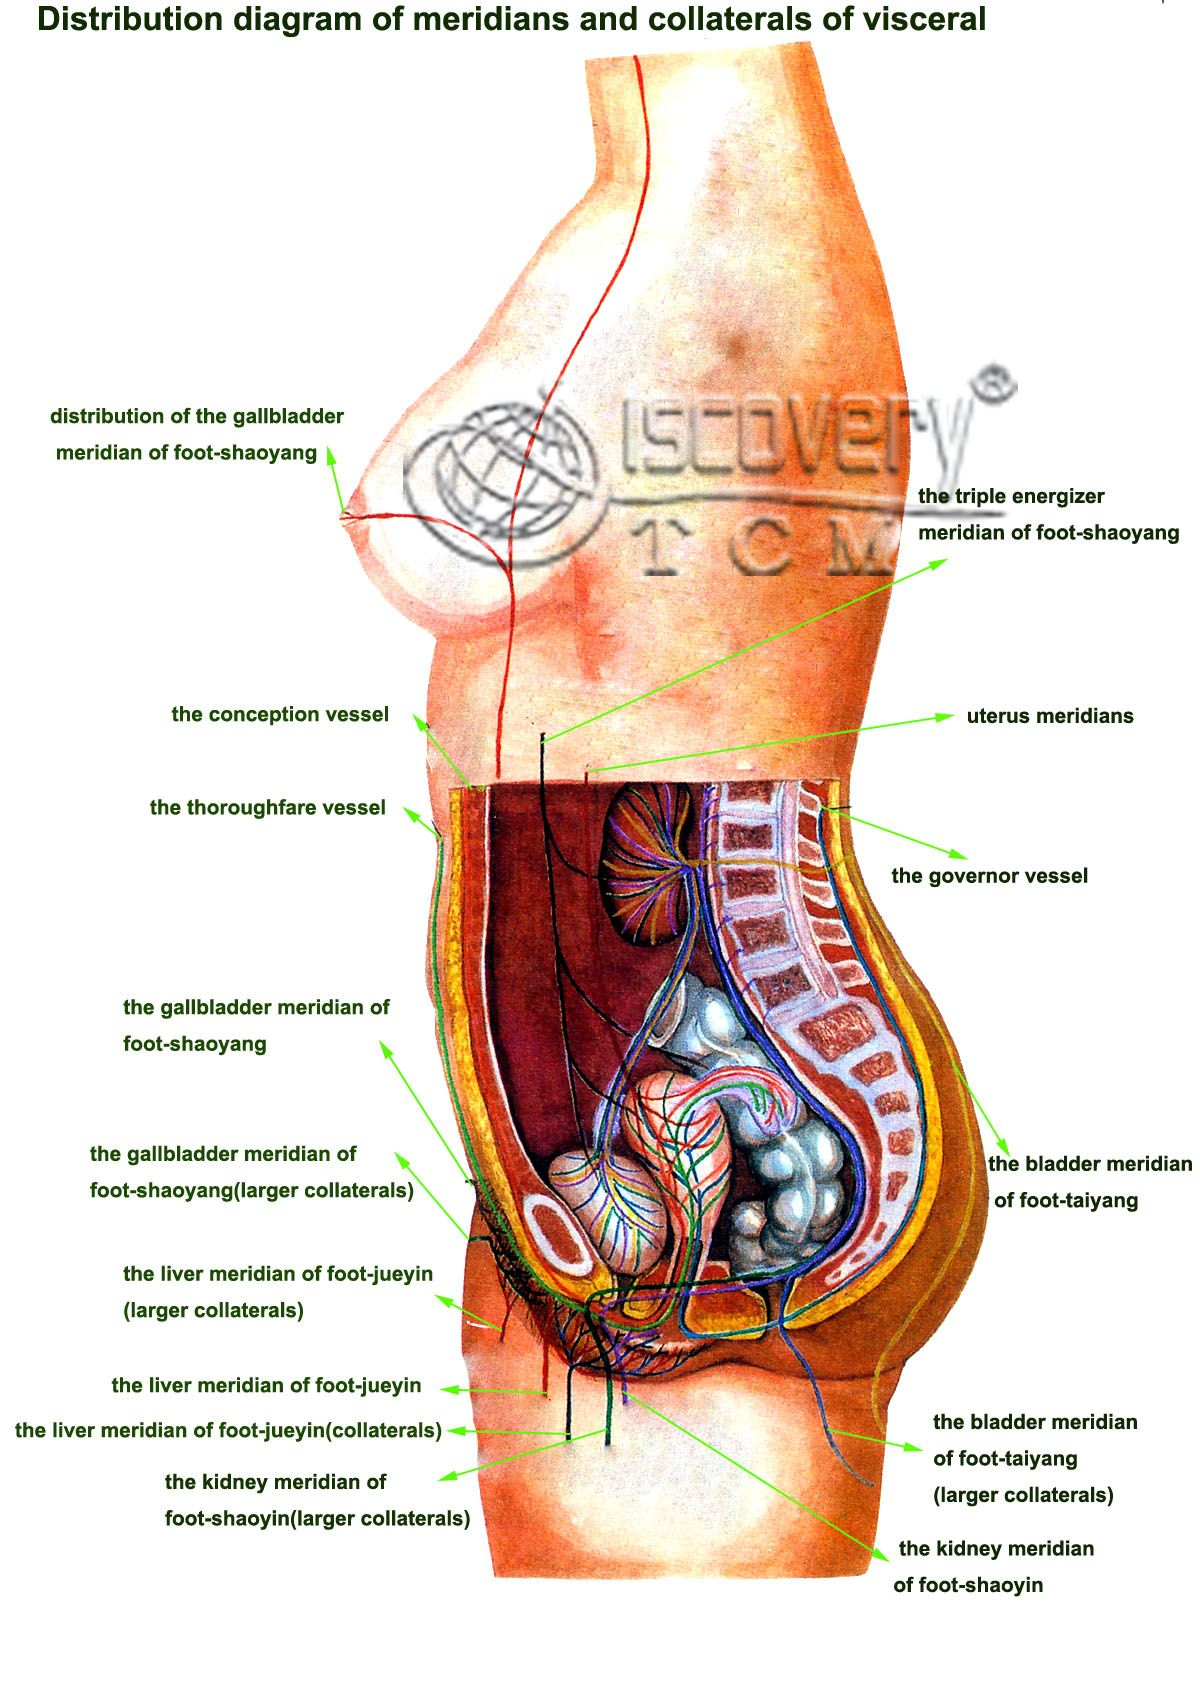 Female Anatomy Diagram Organs Illustrations Human Body Organs